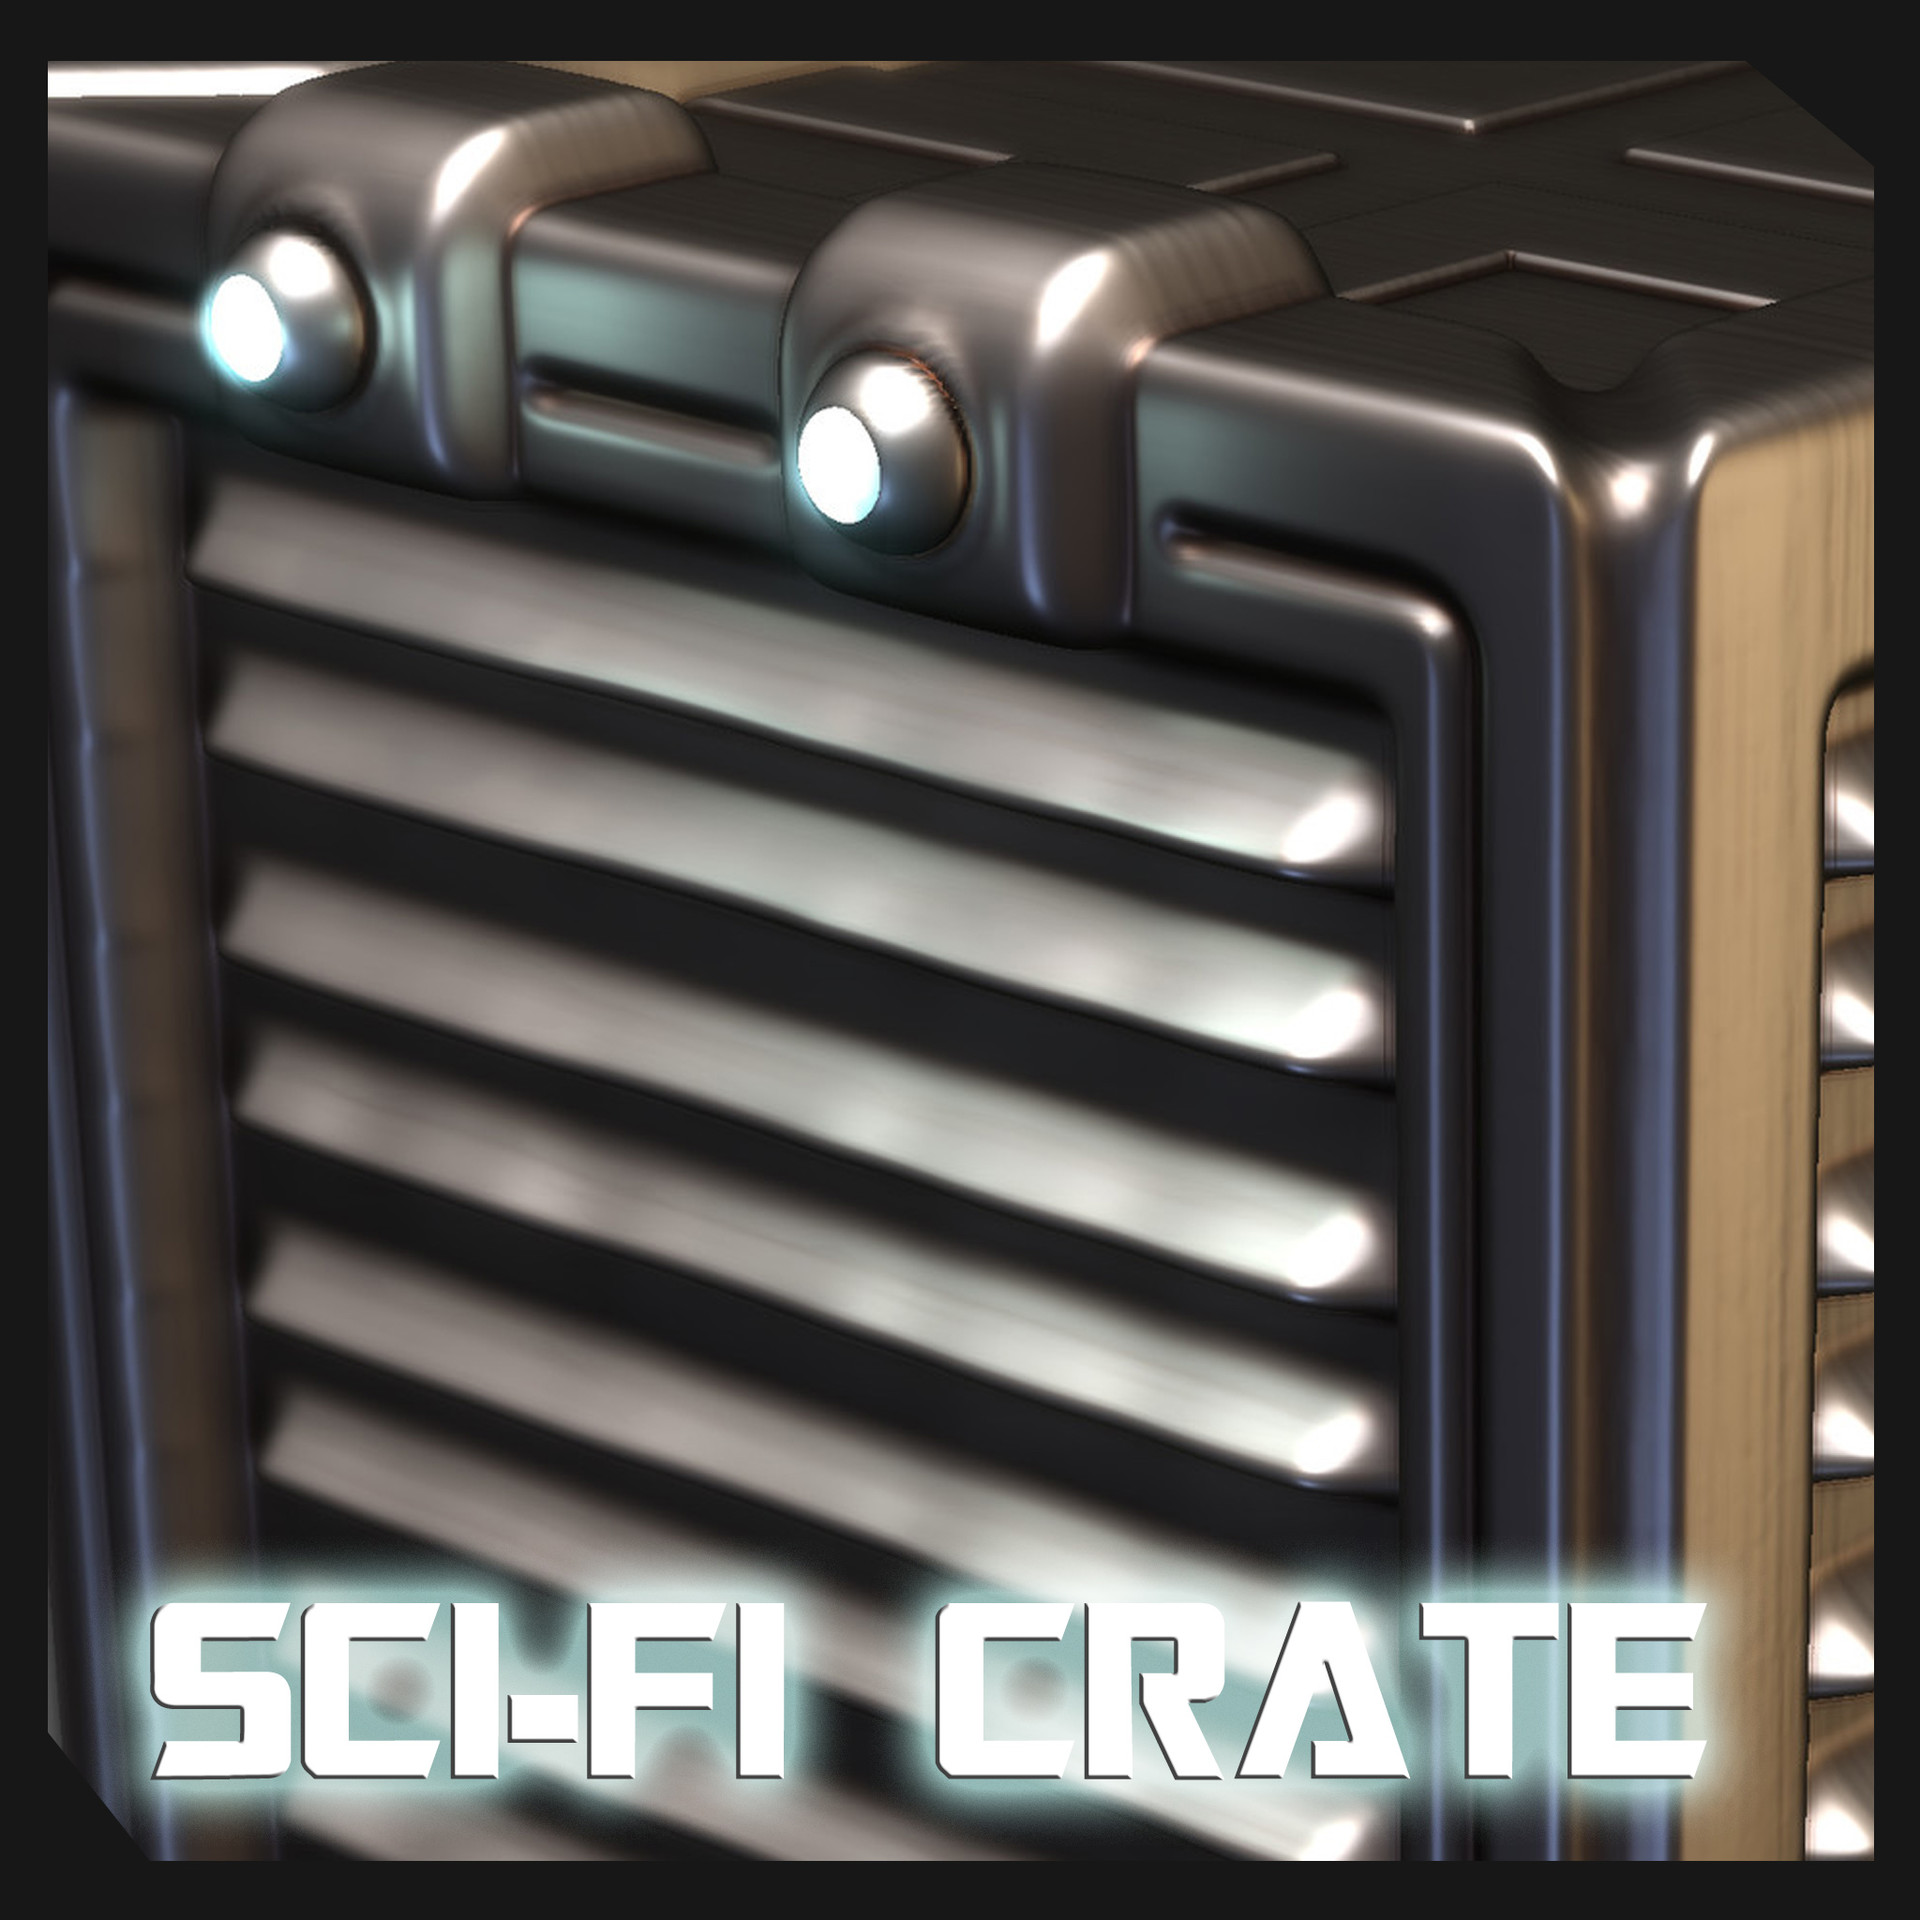 SCI-FI Crate Sketch and testing hard surface VDMs